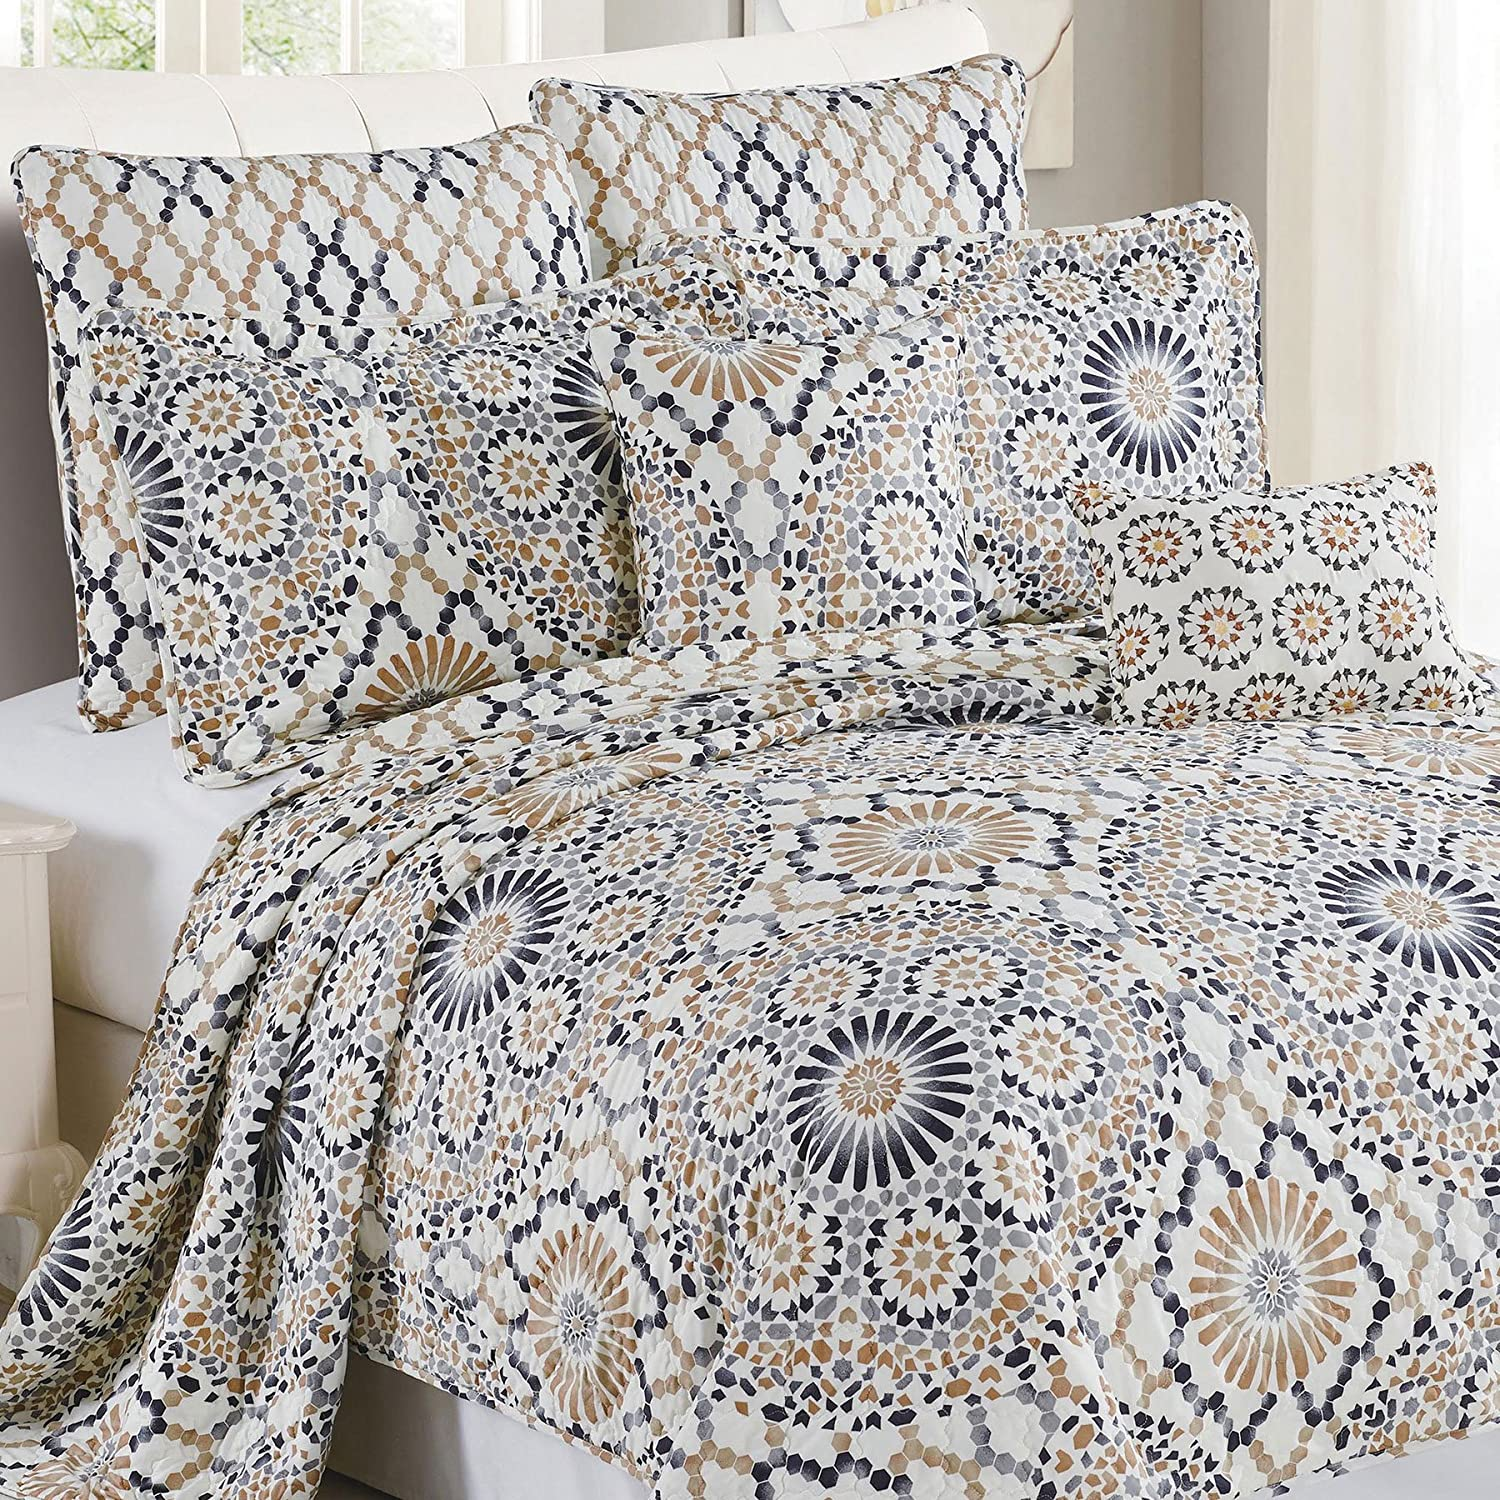 Serenta 7 Piece Printed Microfiber Bedspread T Manufacturer regenerated product Set Louisville-Jefferson County Mall Queen Quilts